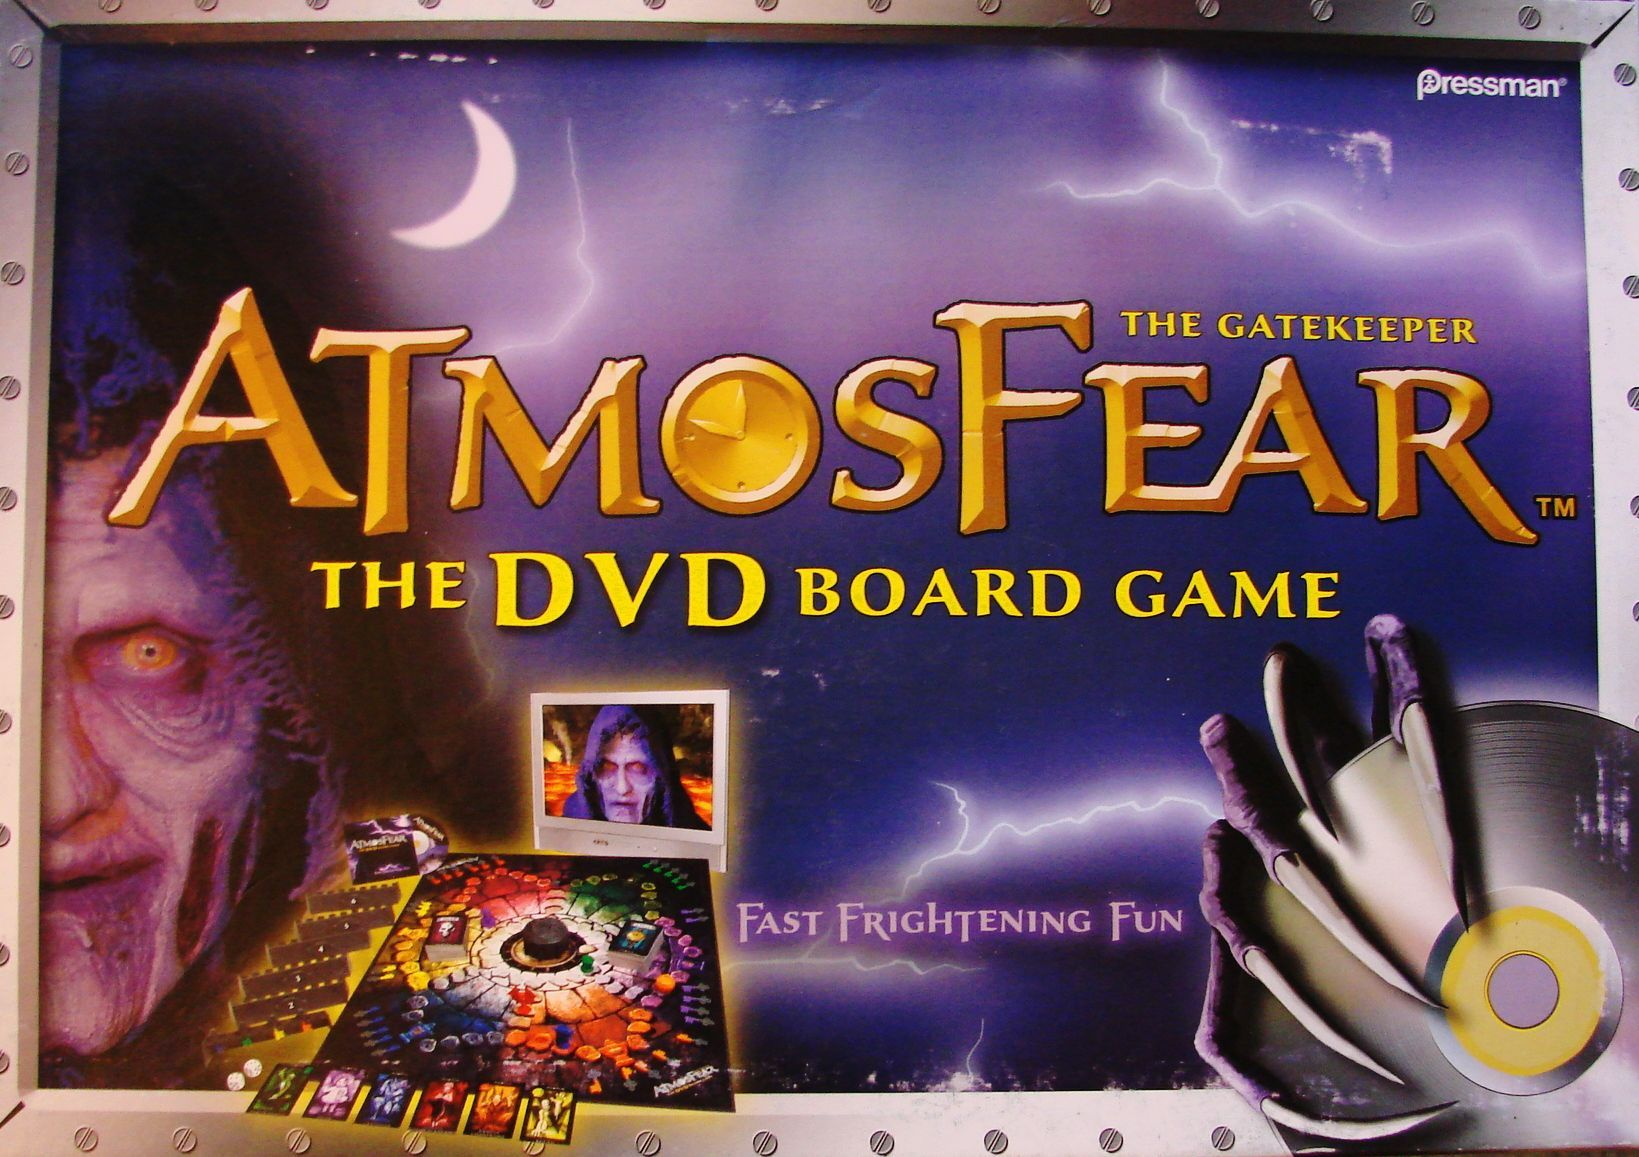 Atmosfear: The DVD Board Game